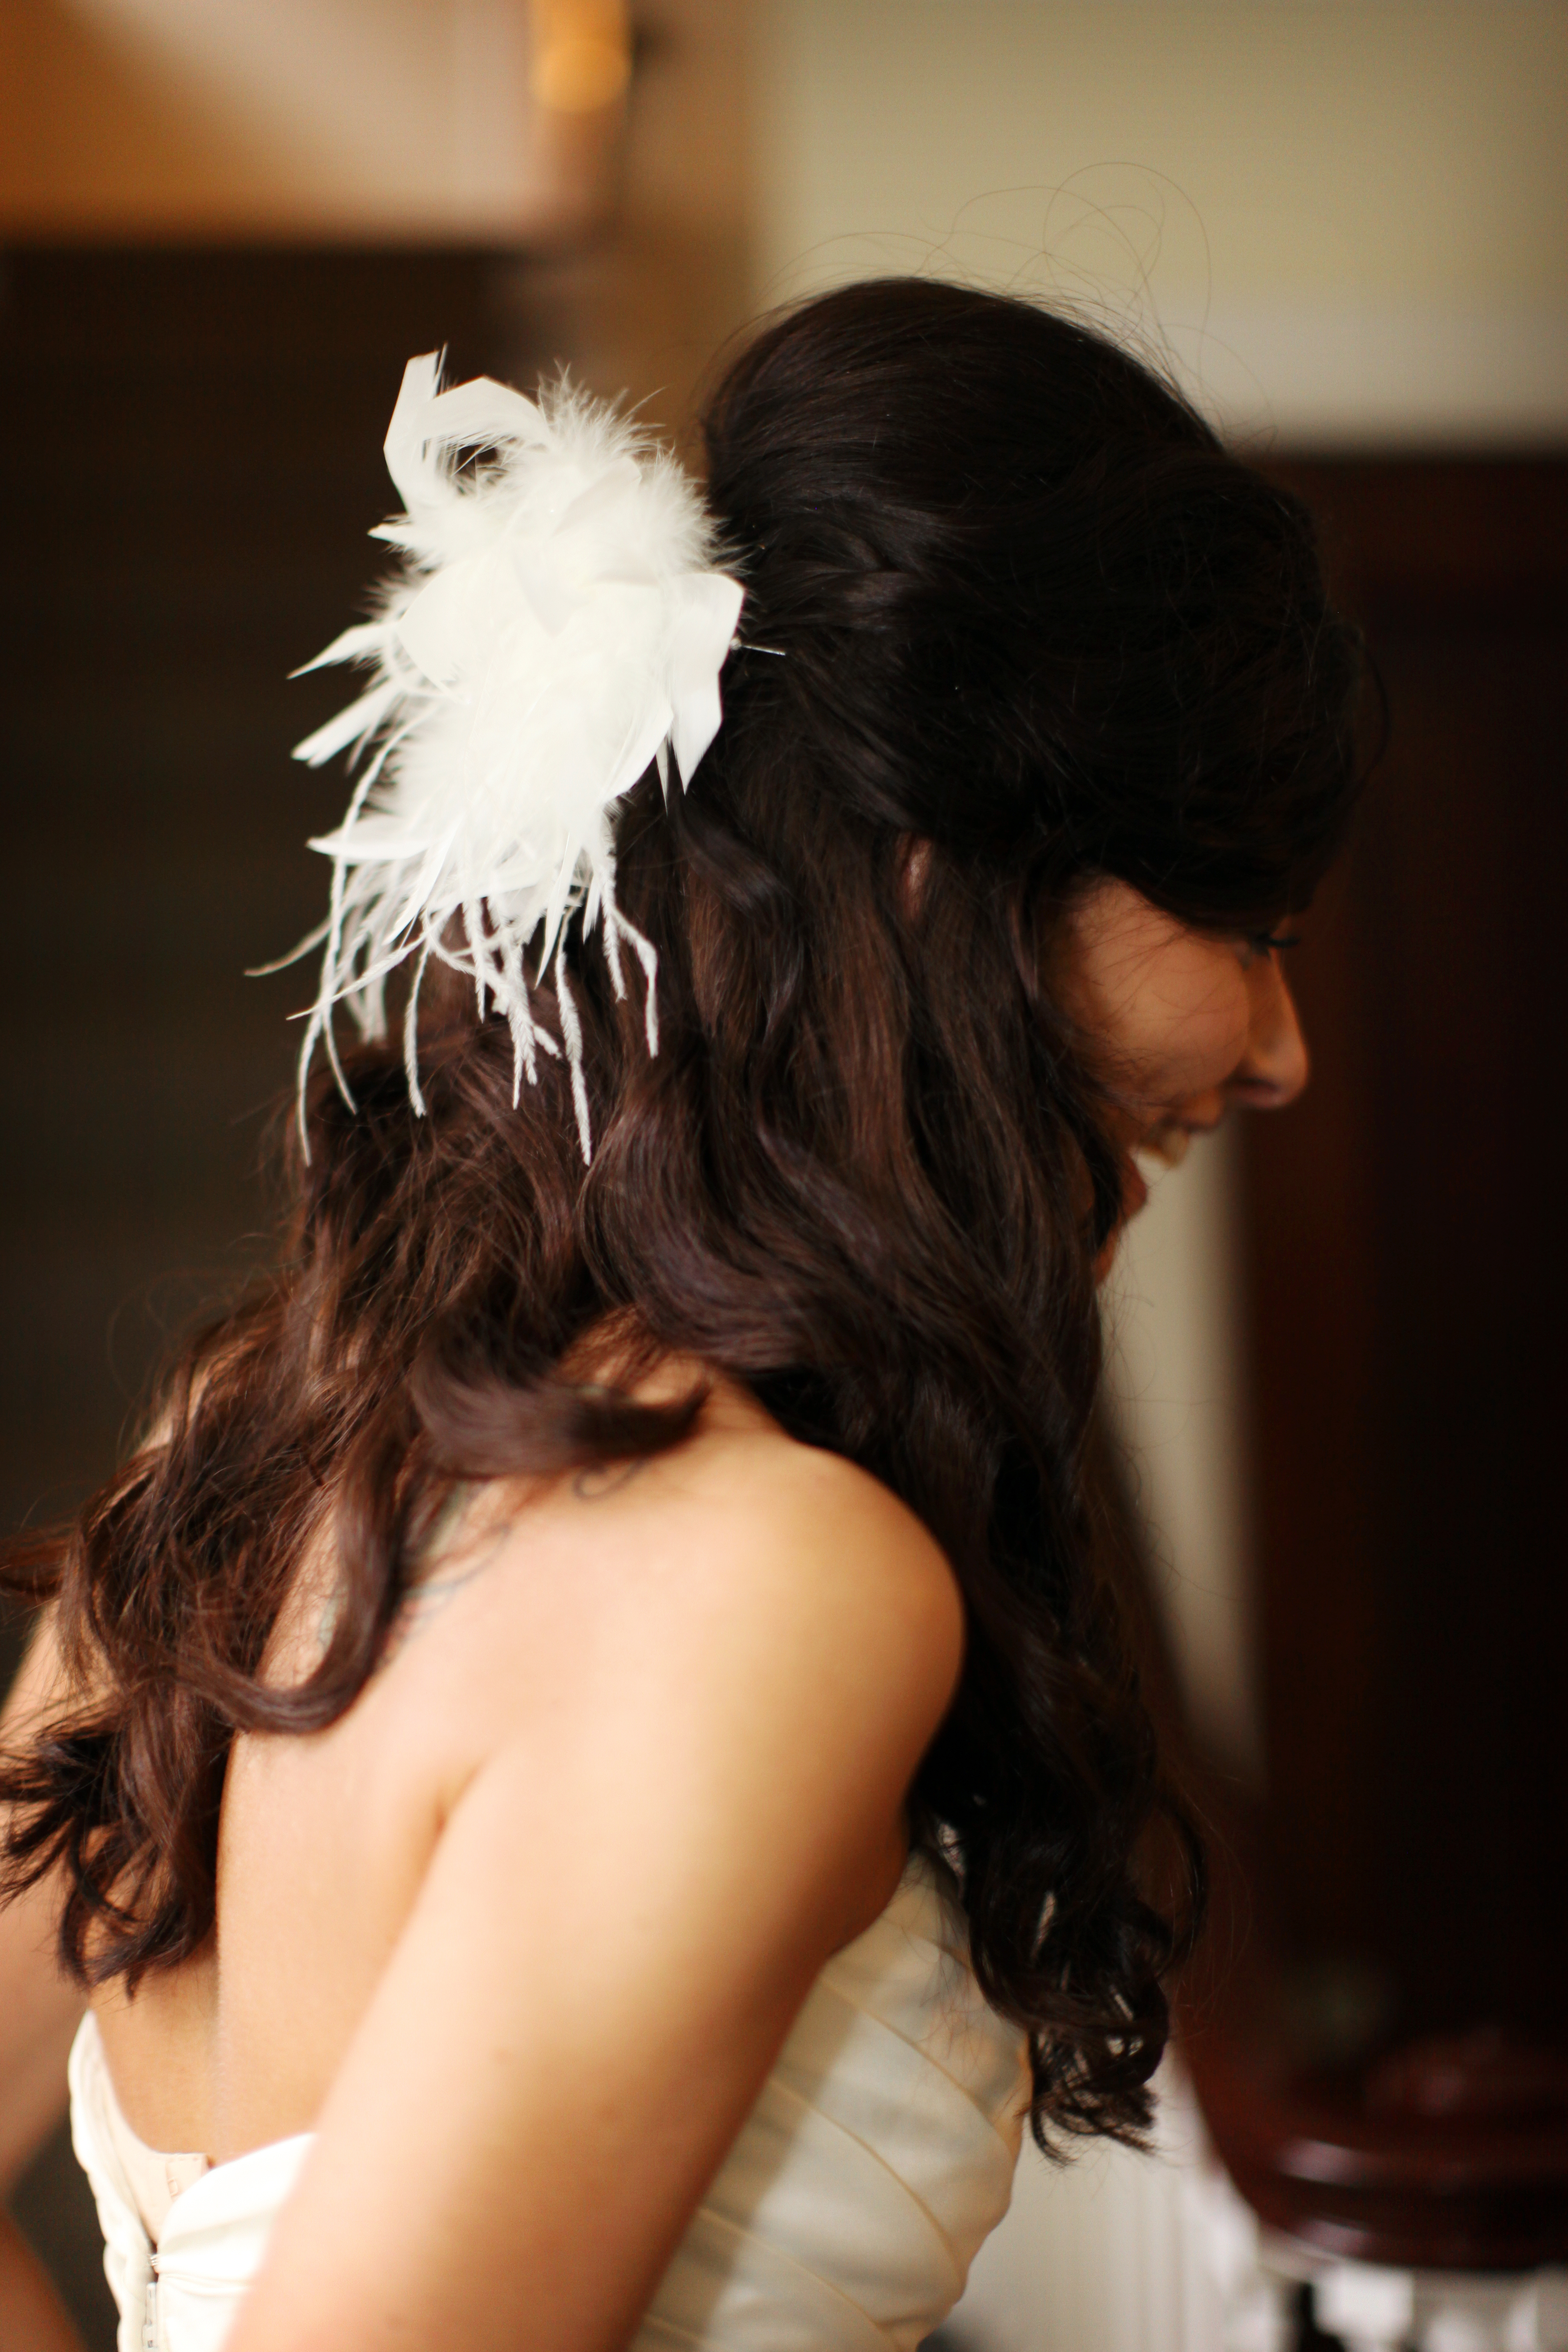 Beauty, Wavy Hair, Long Hair, Feathers, Hair, Long, Wavy, Up, Half, Brunette, Courtney sawyer